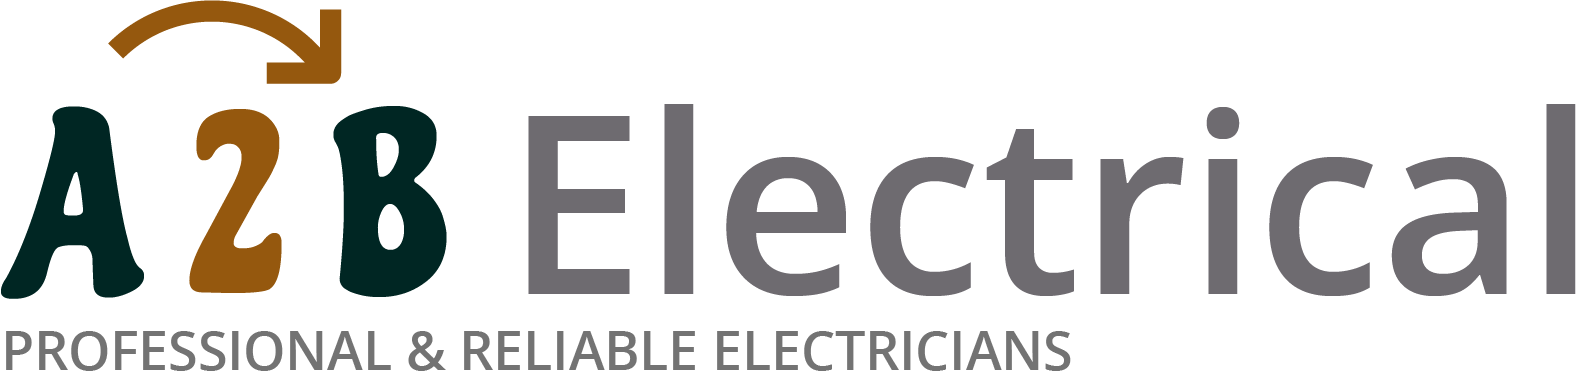 If you have electrical wiring problems in Wembley Central, we can provide an electrician to have a look for you.